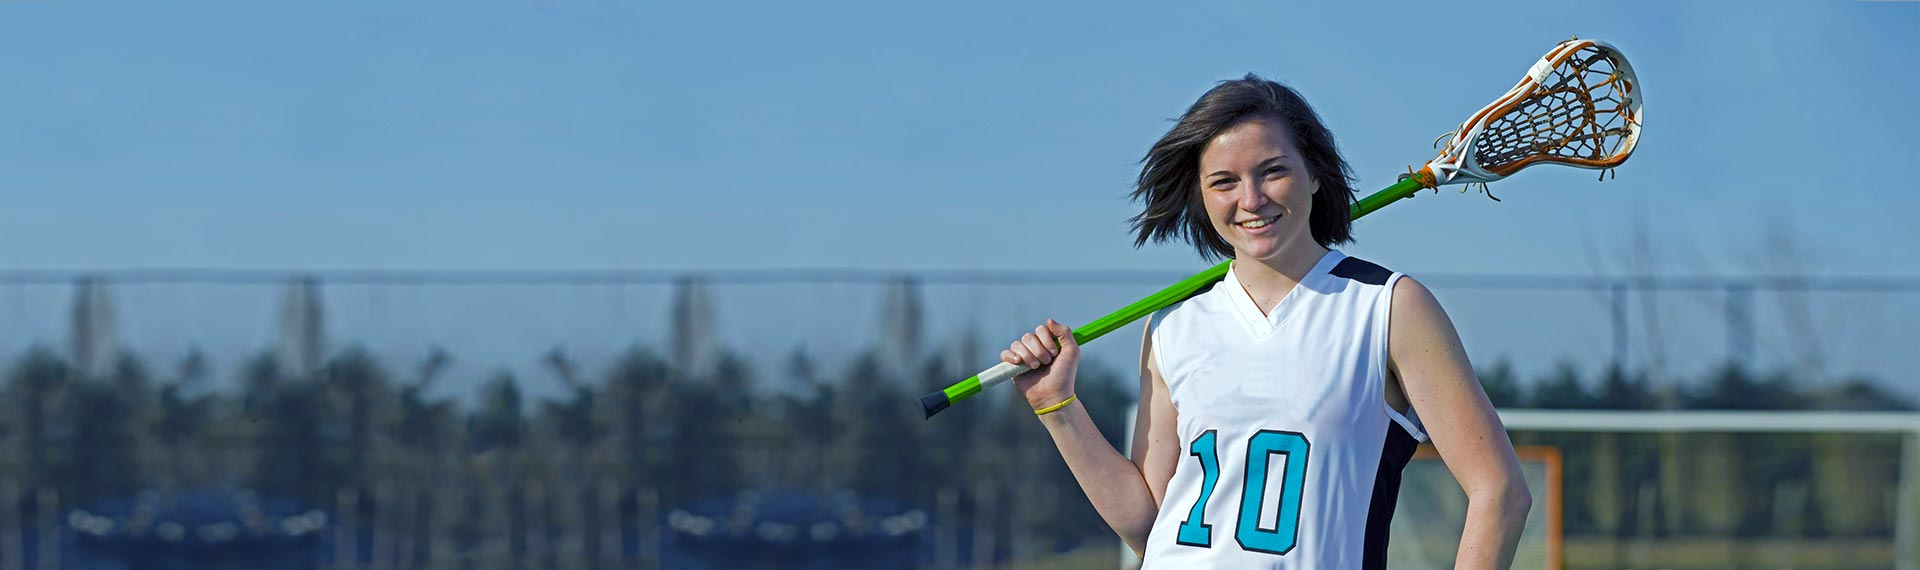 Non-Surgical Sports Medicine Treatments | NOSA Orthopedics, Naples, FL